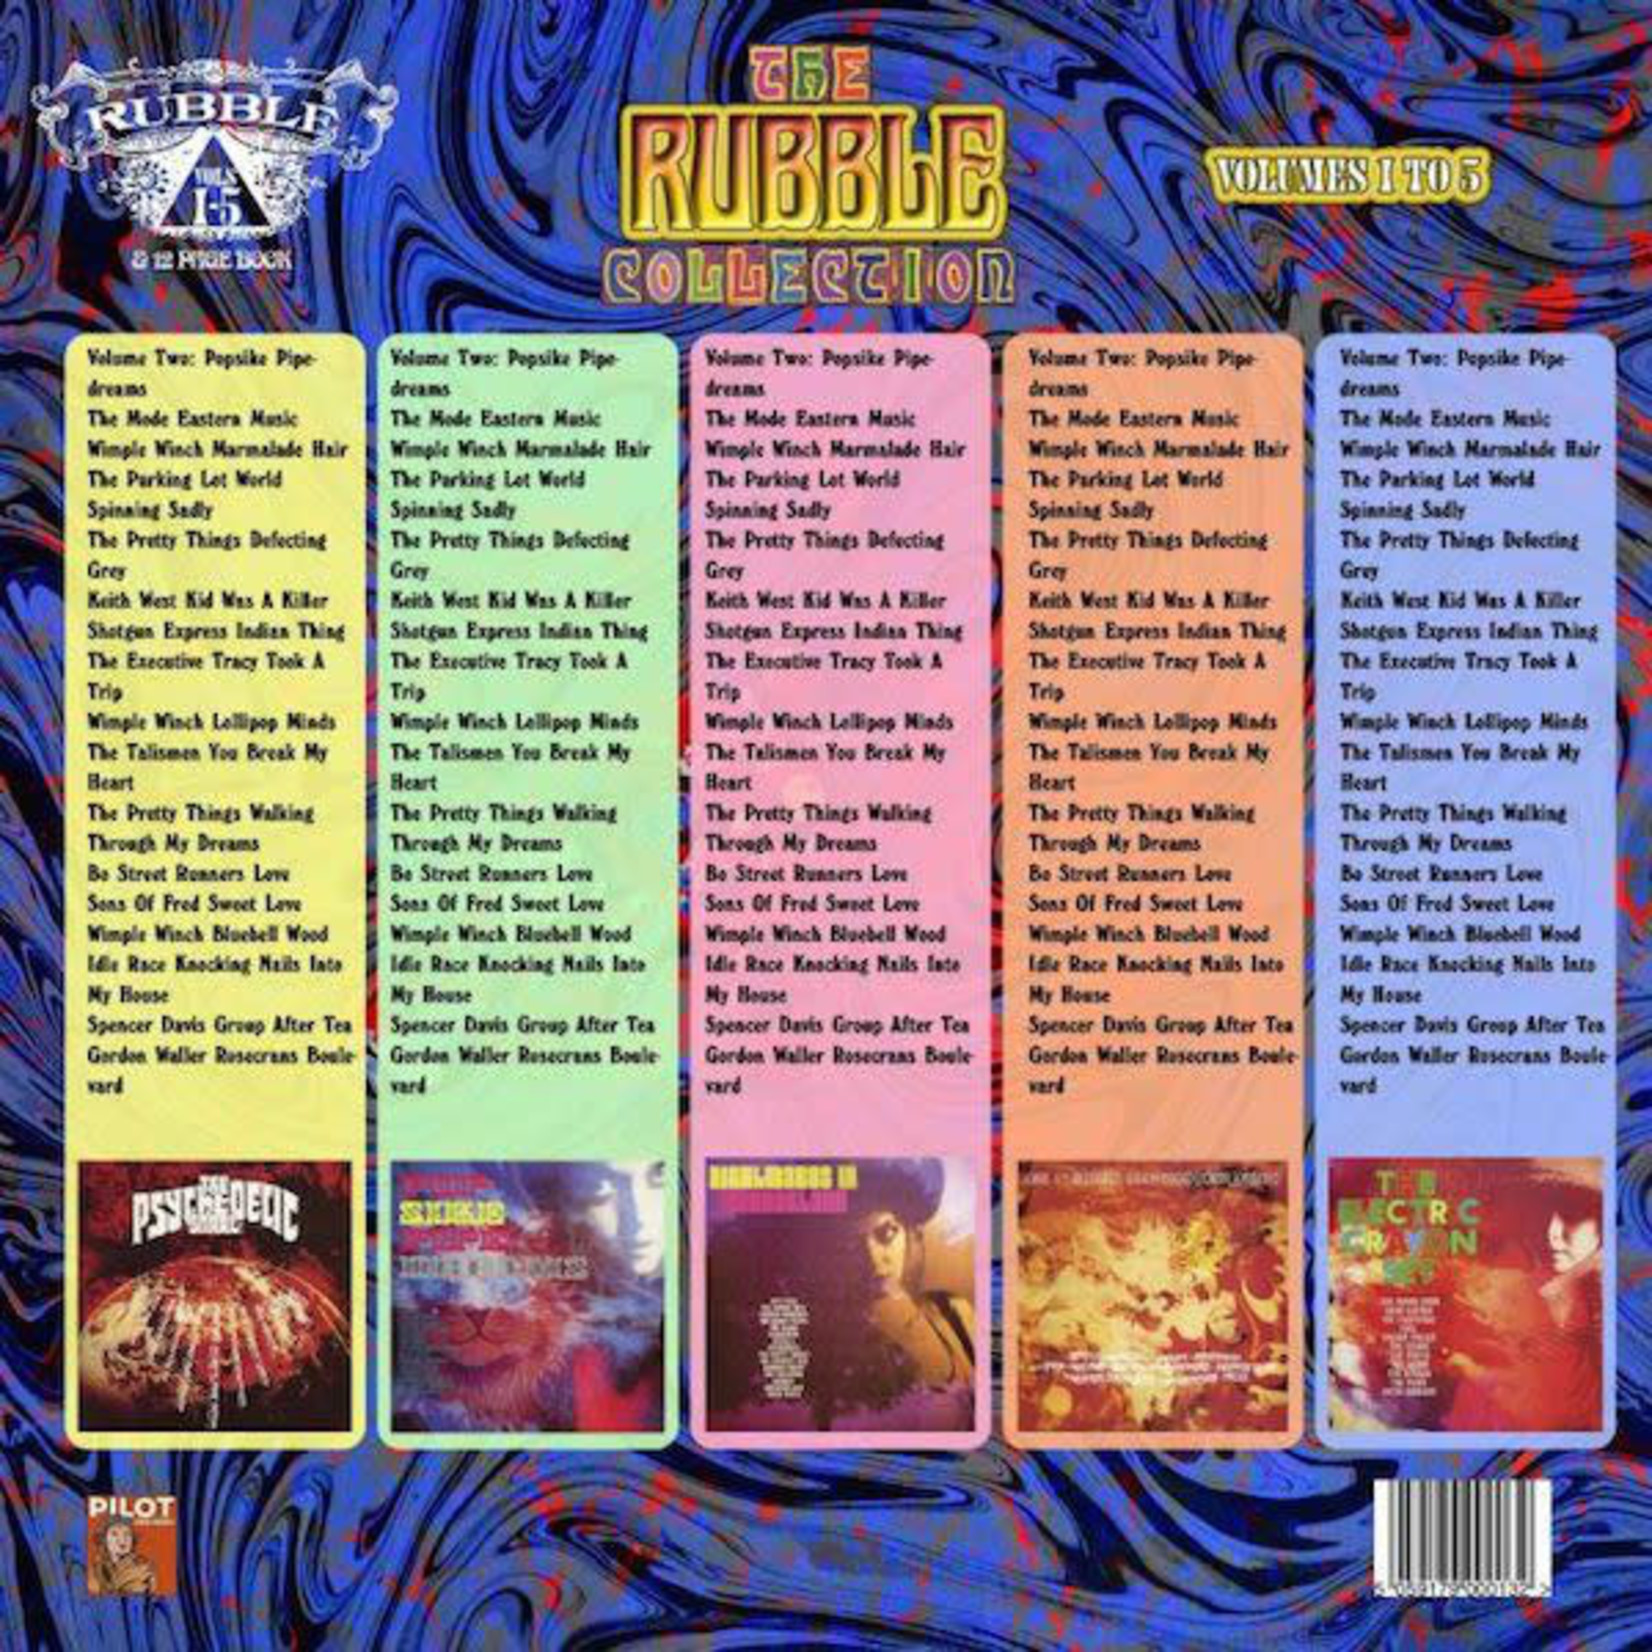 Vinyl The Rubble Collection: Volume 1 to 5